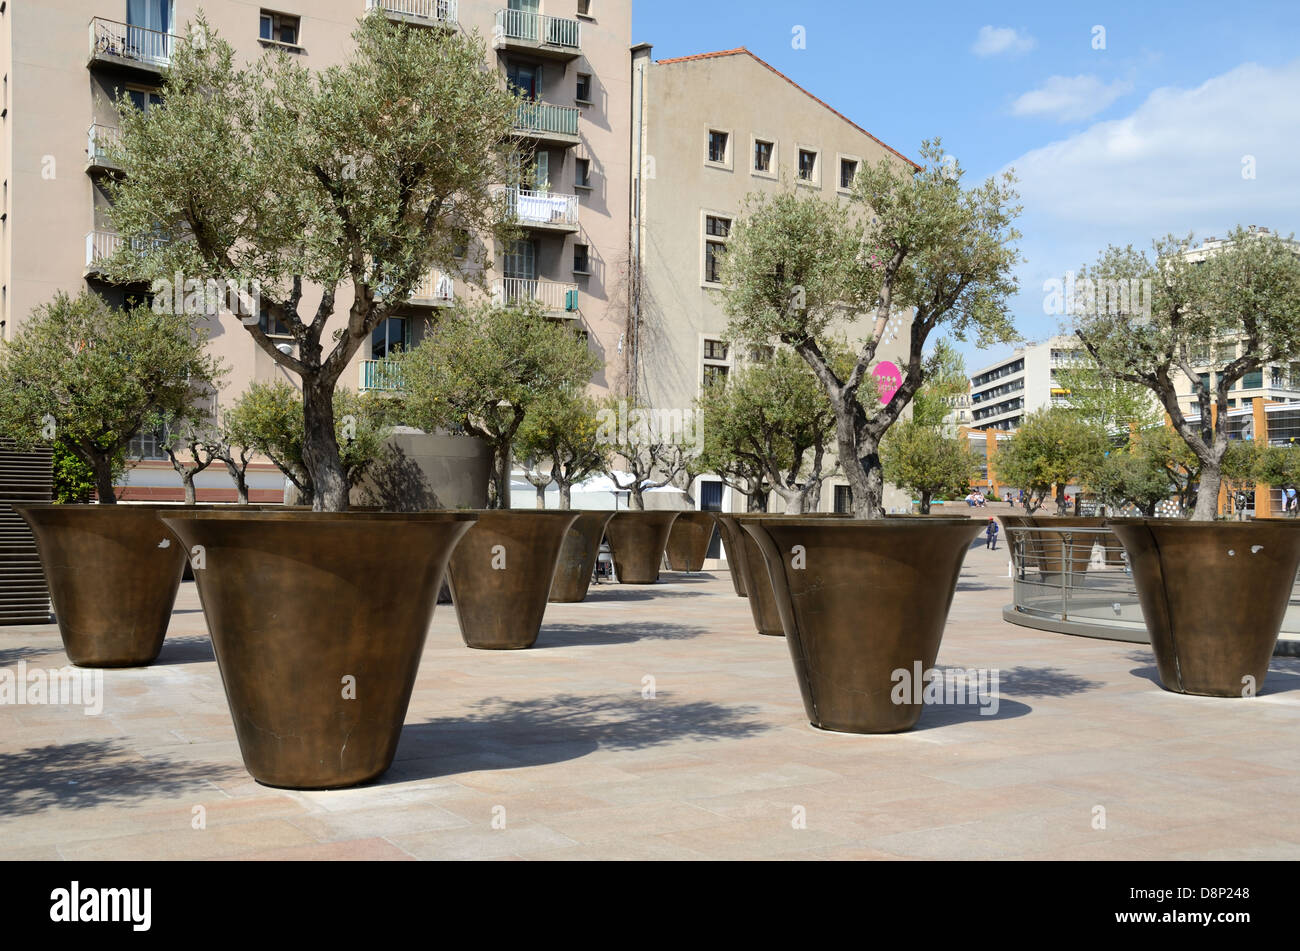 Giant planters or flower pots olive trees near the town hall marseille france stock